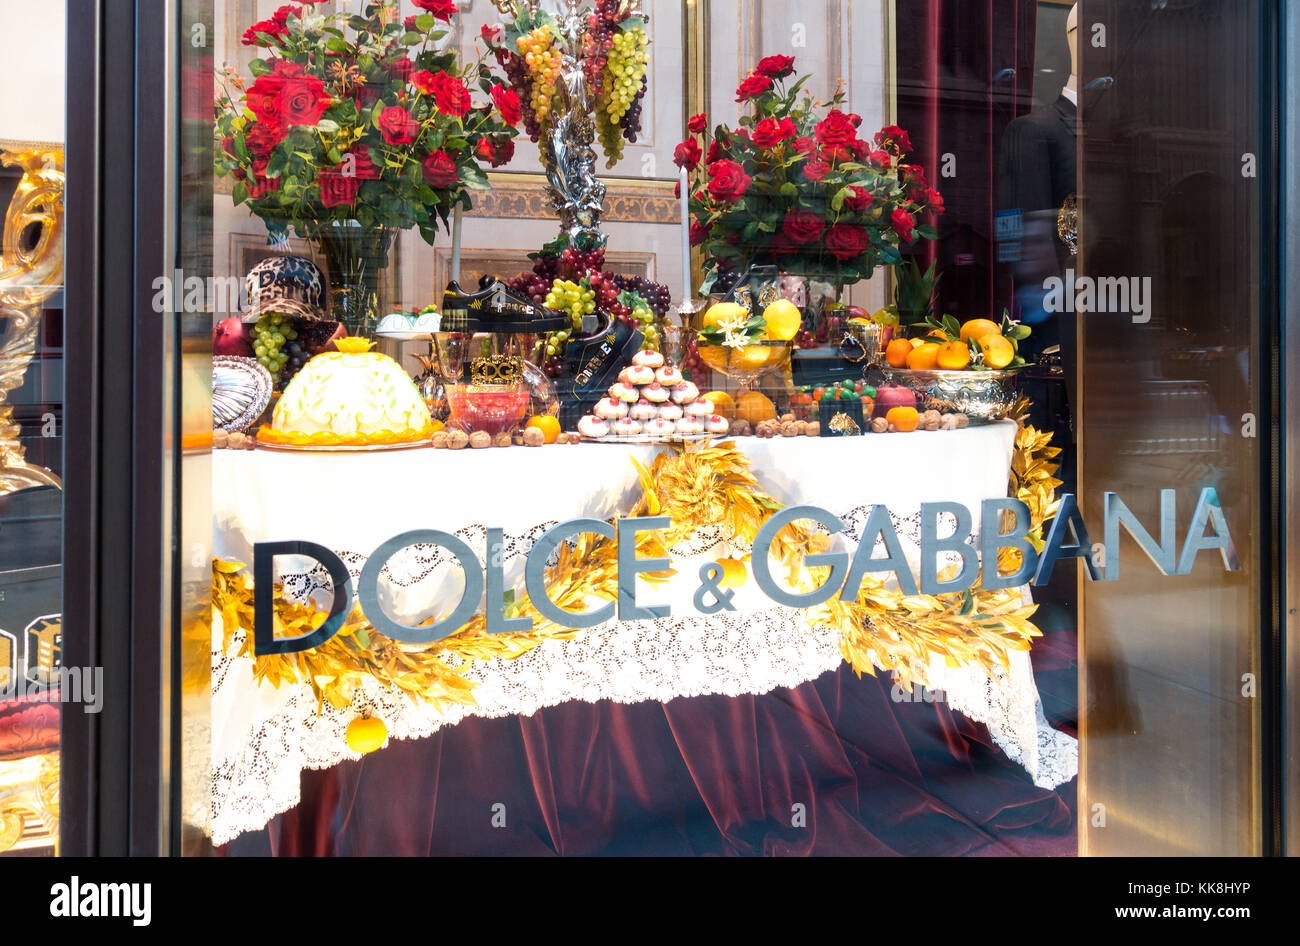 2017 Dolce & Gabbana Holiday window display showing a table of food - Stock Image